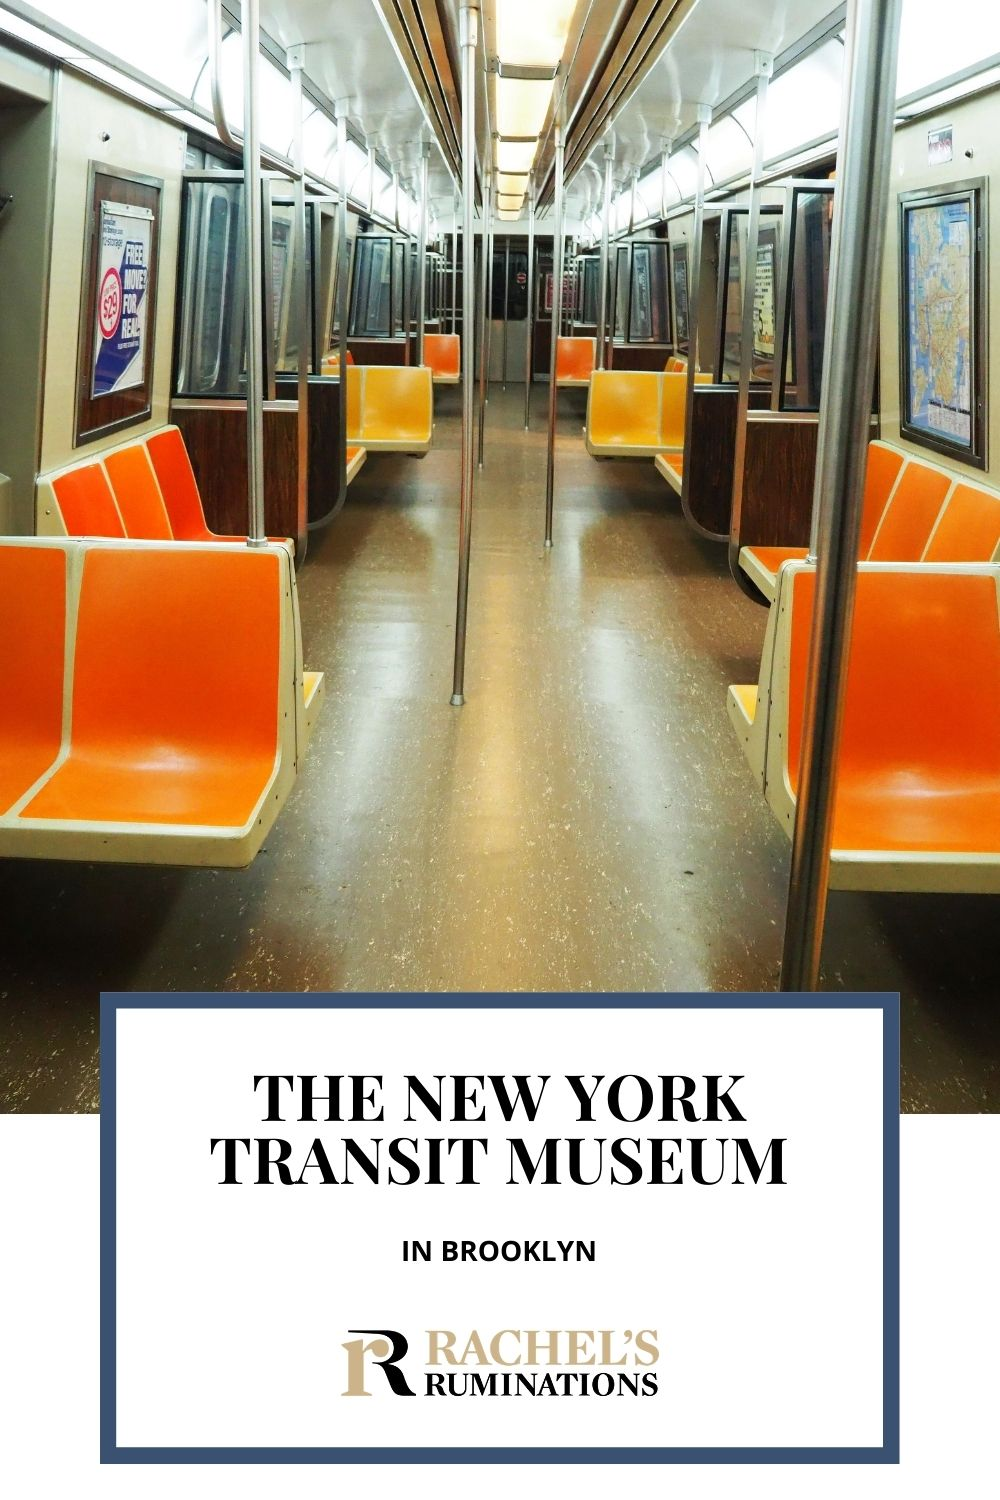 The New York Transit Museum is a lesson in how the NYC subways came to be, with vintage subway cars, but also shows period advertising. Click to read all about it! via @rachelsruminations